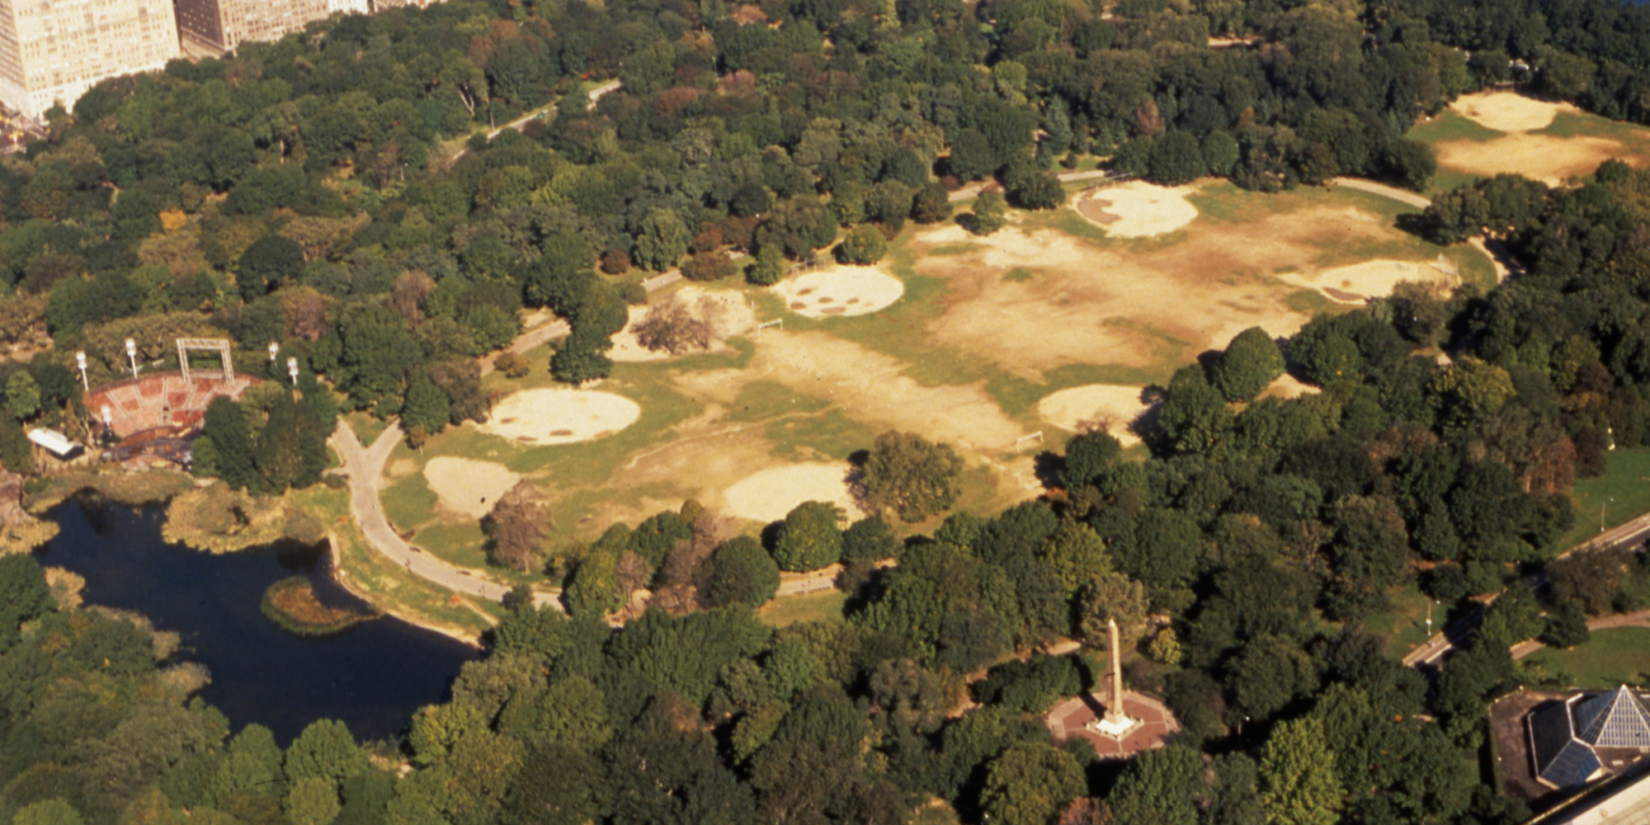 An archival aerial photo of the Great Lawn showing more dust than grass.